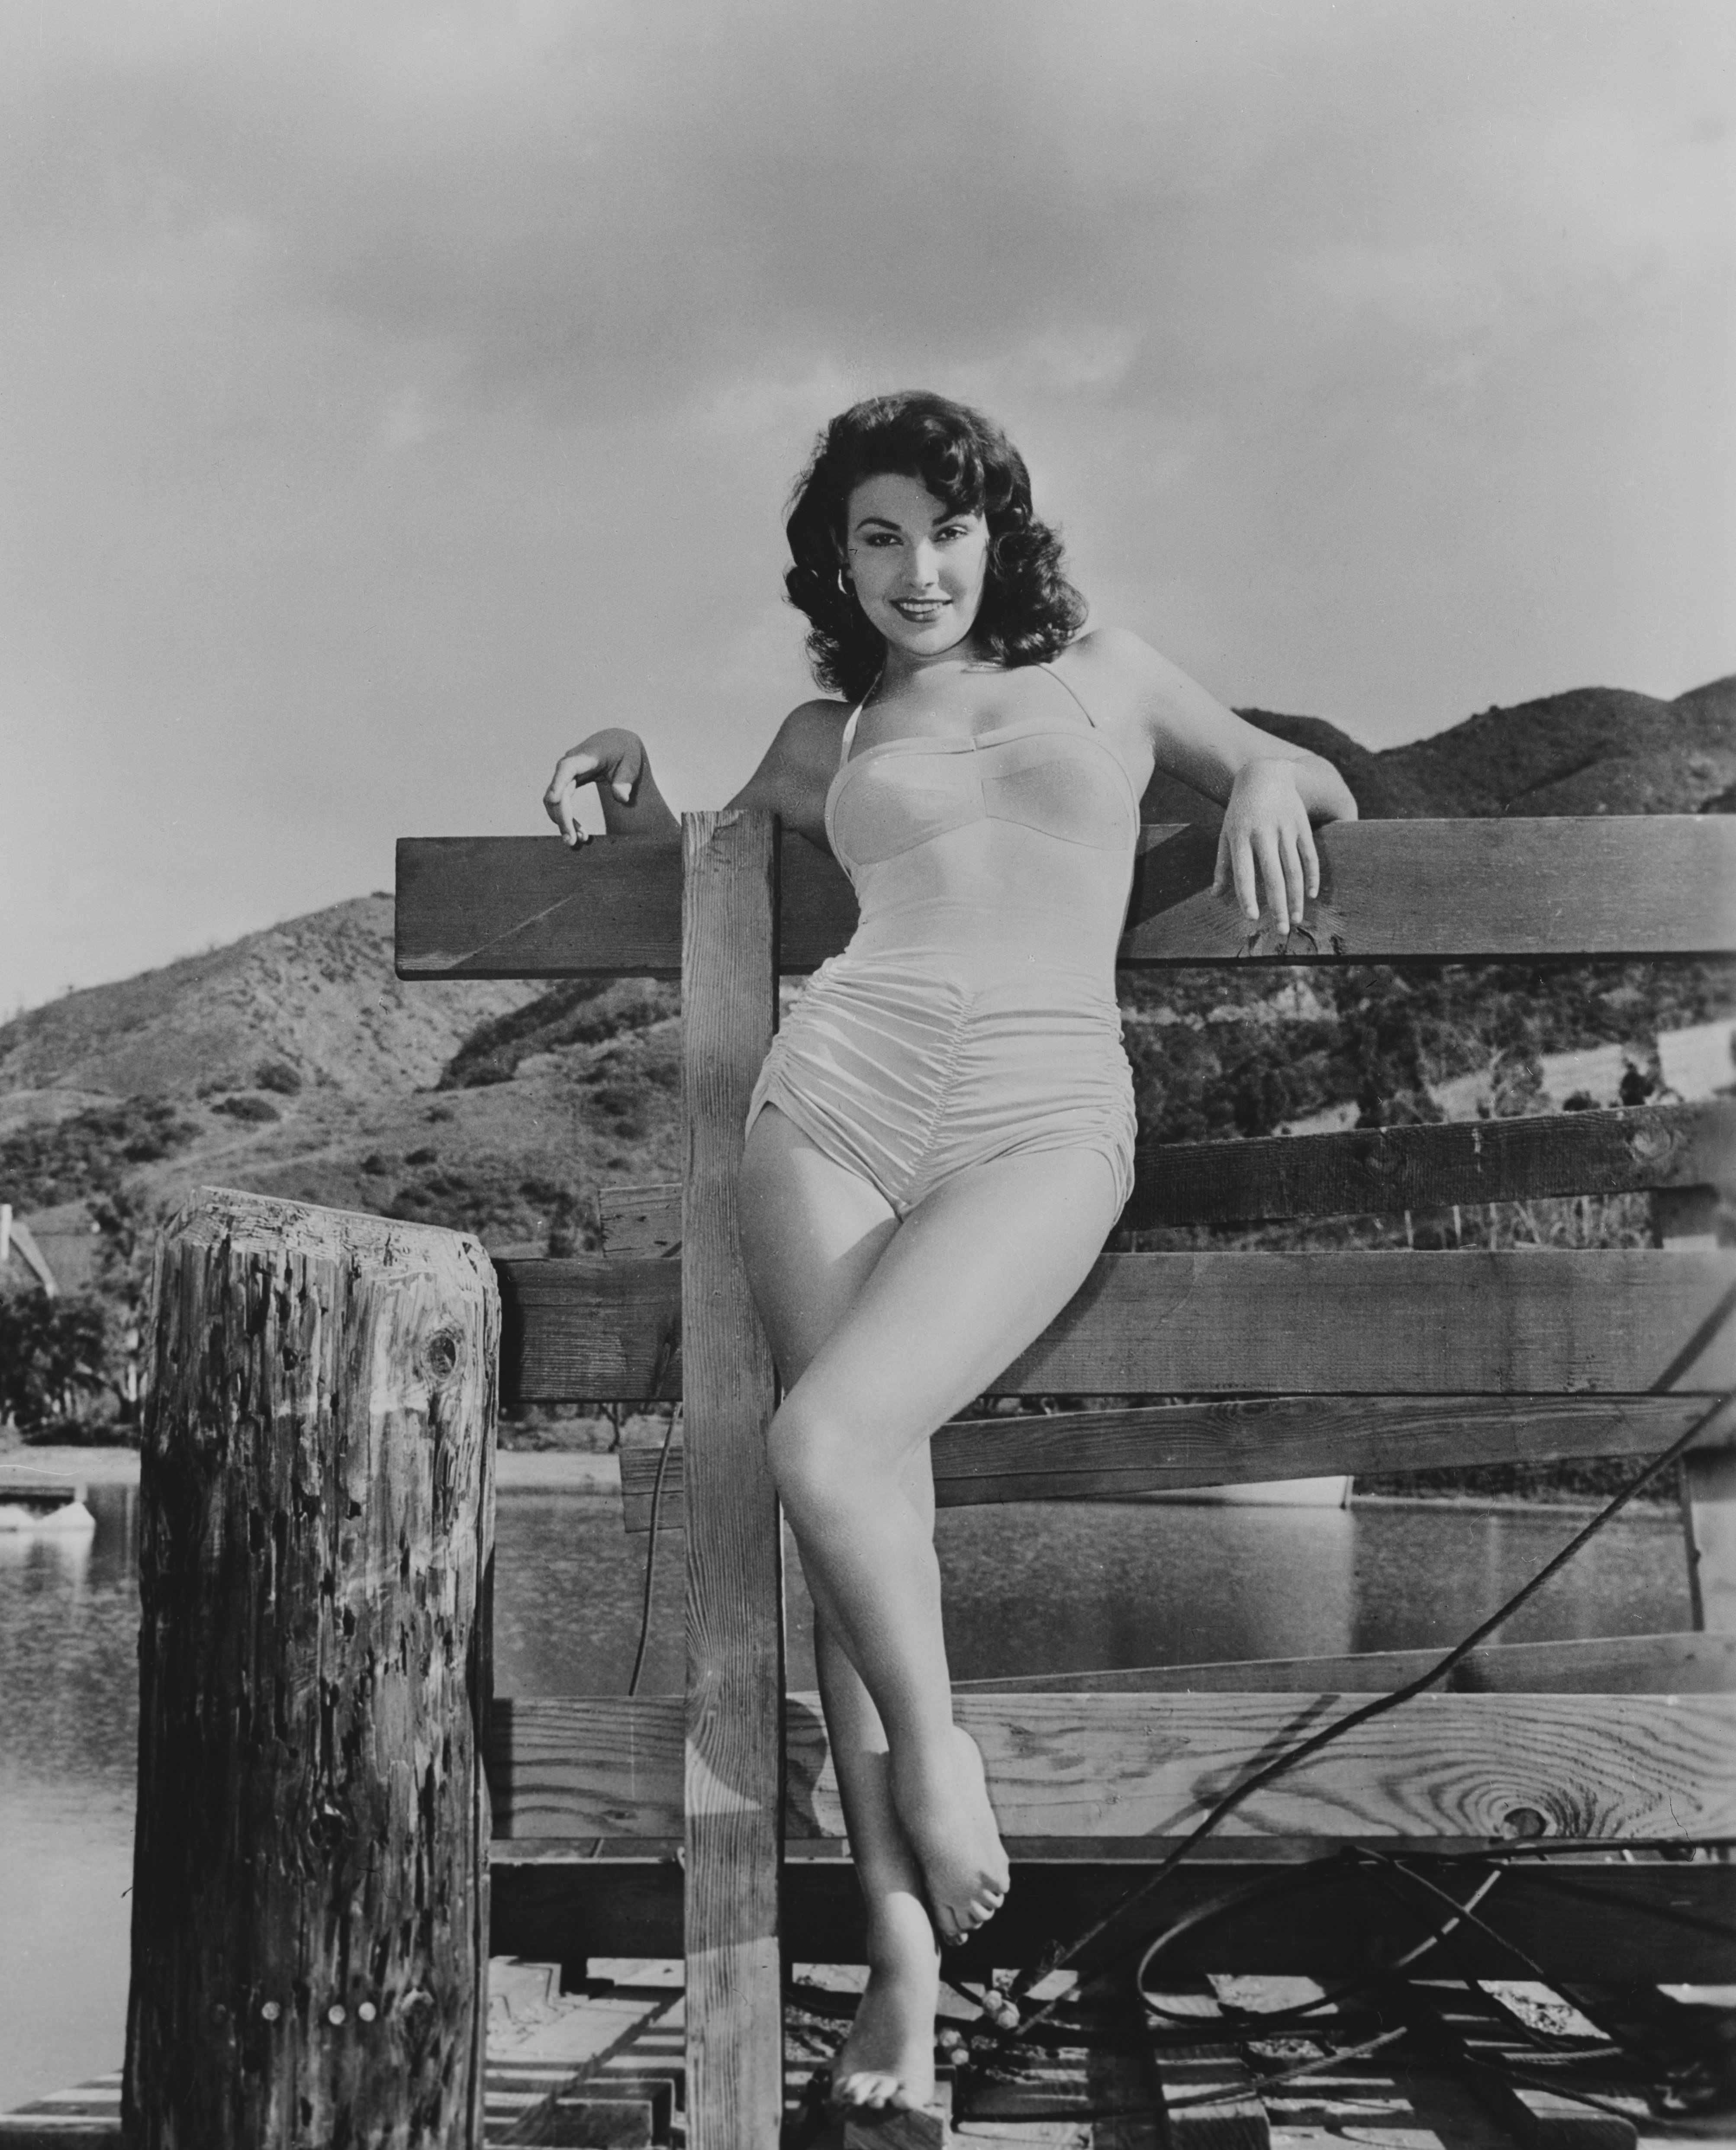 Image Source: Getty Images| Mara posing in her swimwear